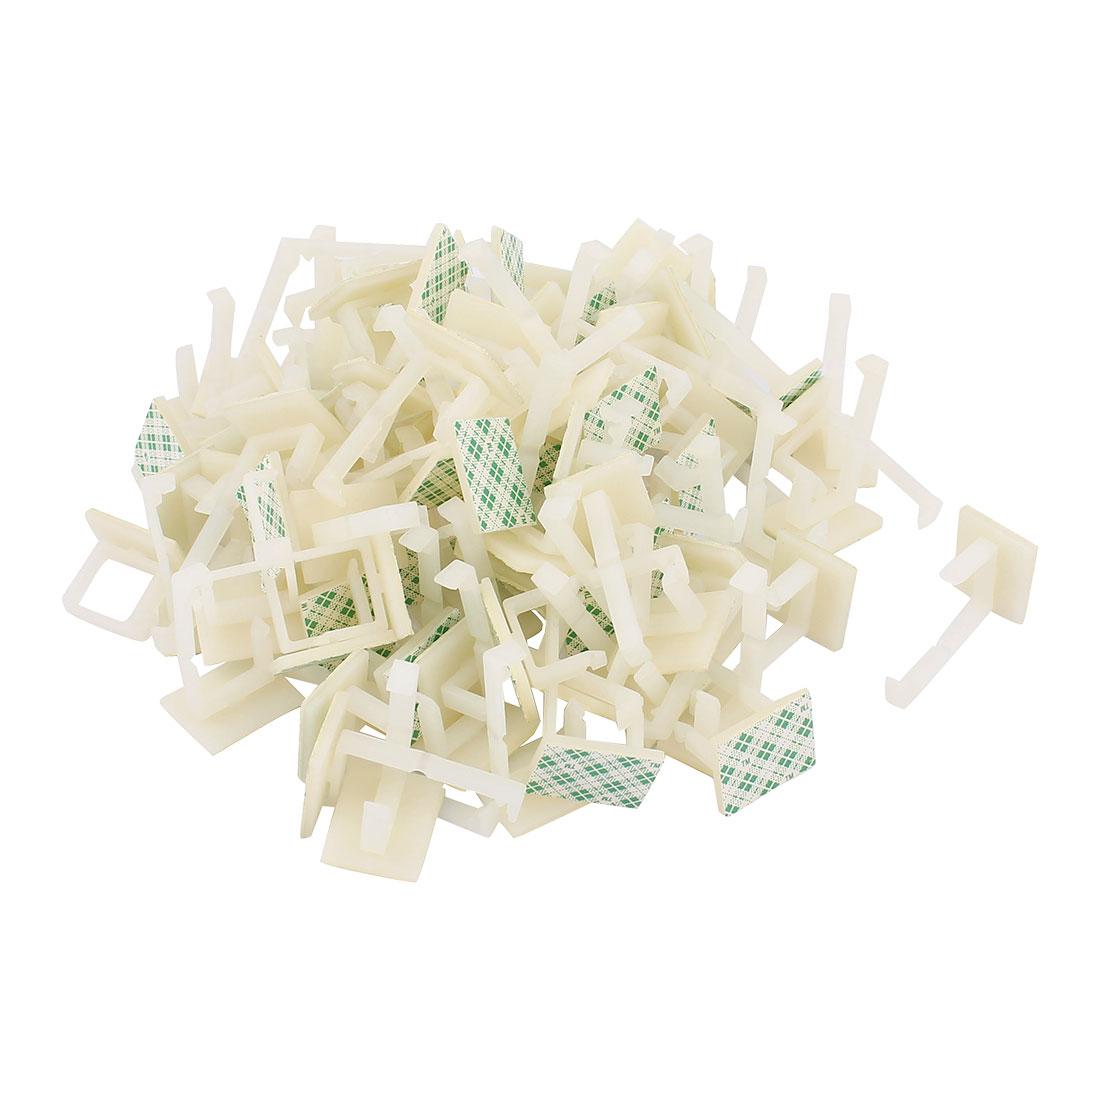 Rectangle Self-adhesive 15mm Cable Tie Mount Clip Off White Green 100Pcs